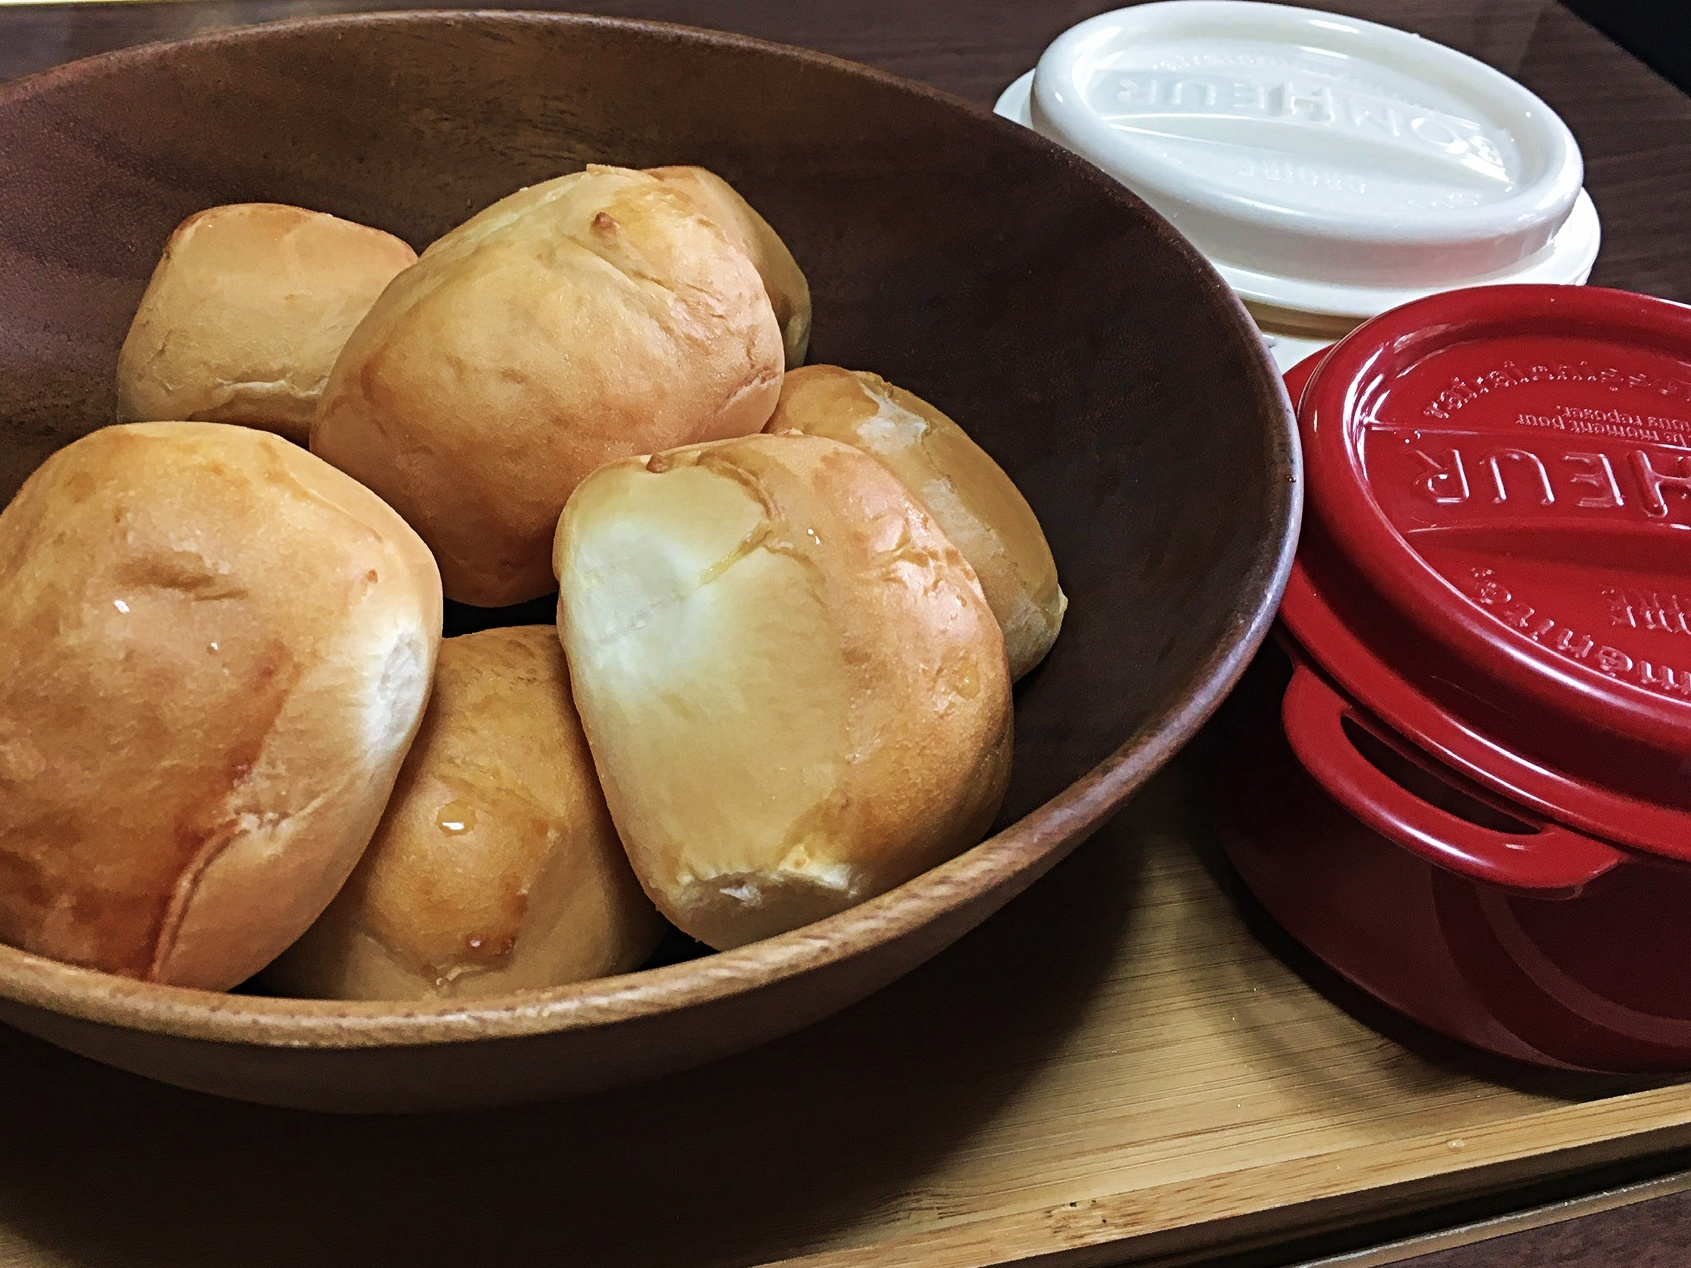 Wooden bowl of sweet bread rolls.